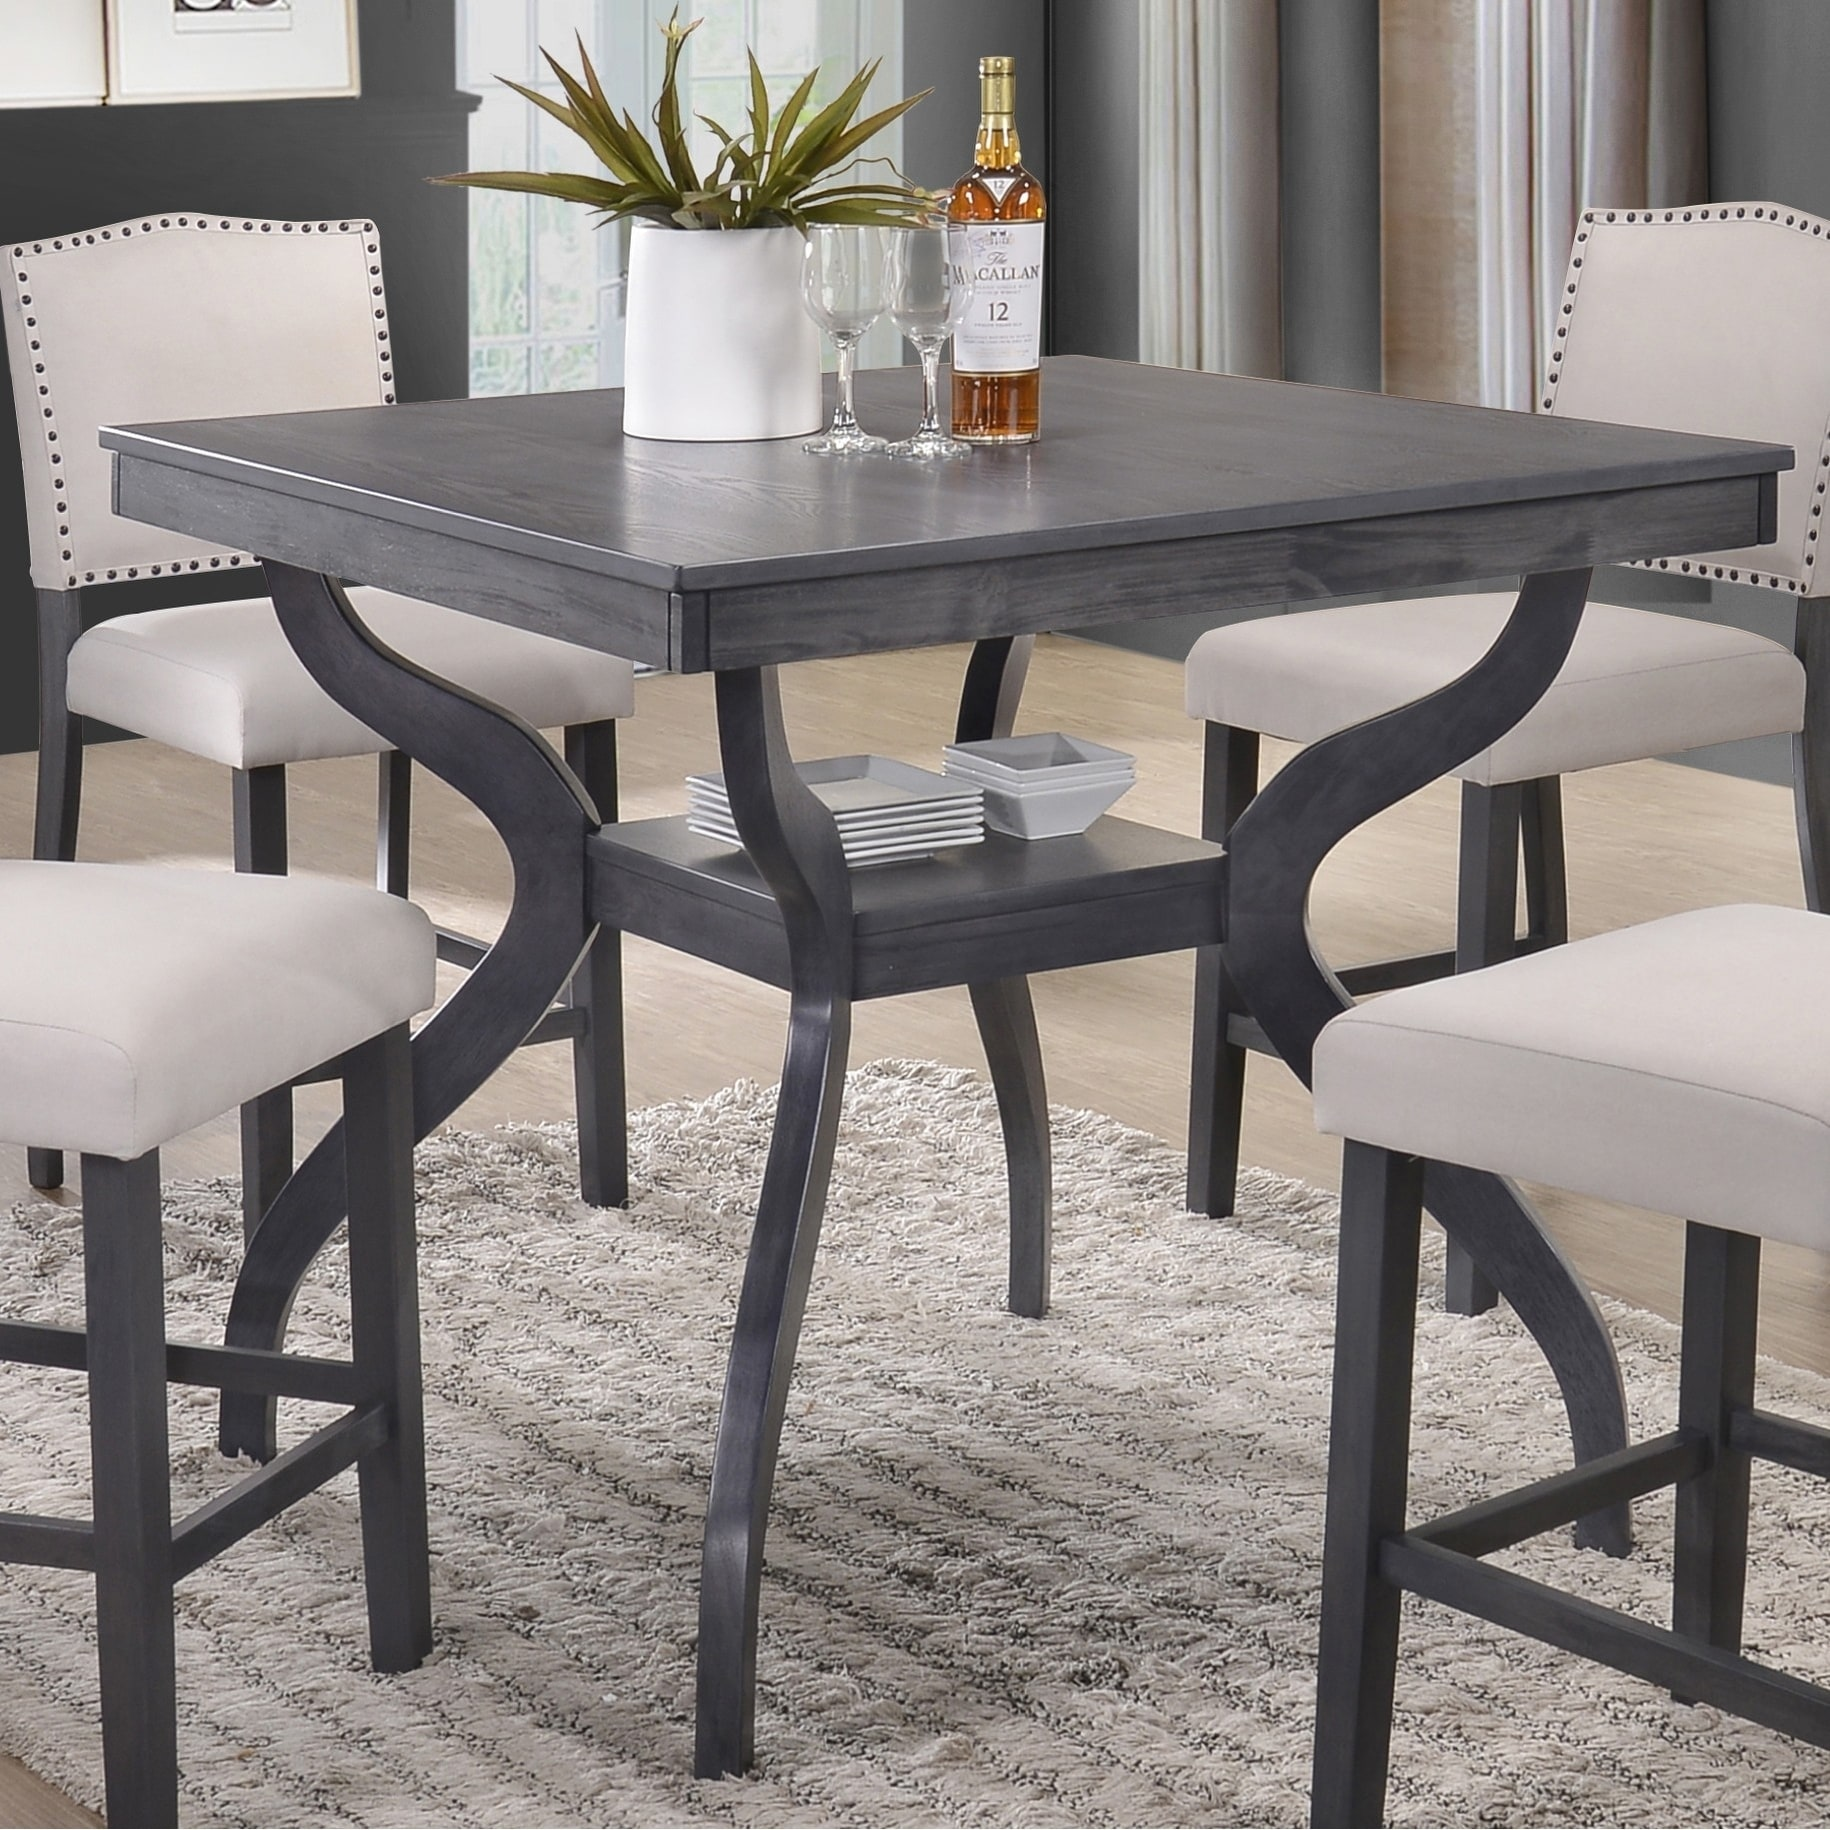 Shop best quality furniture contemporary dining table with storage shelf light grey free shipping today overstock com 18616031